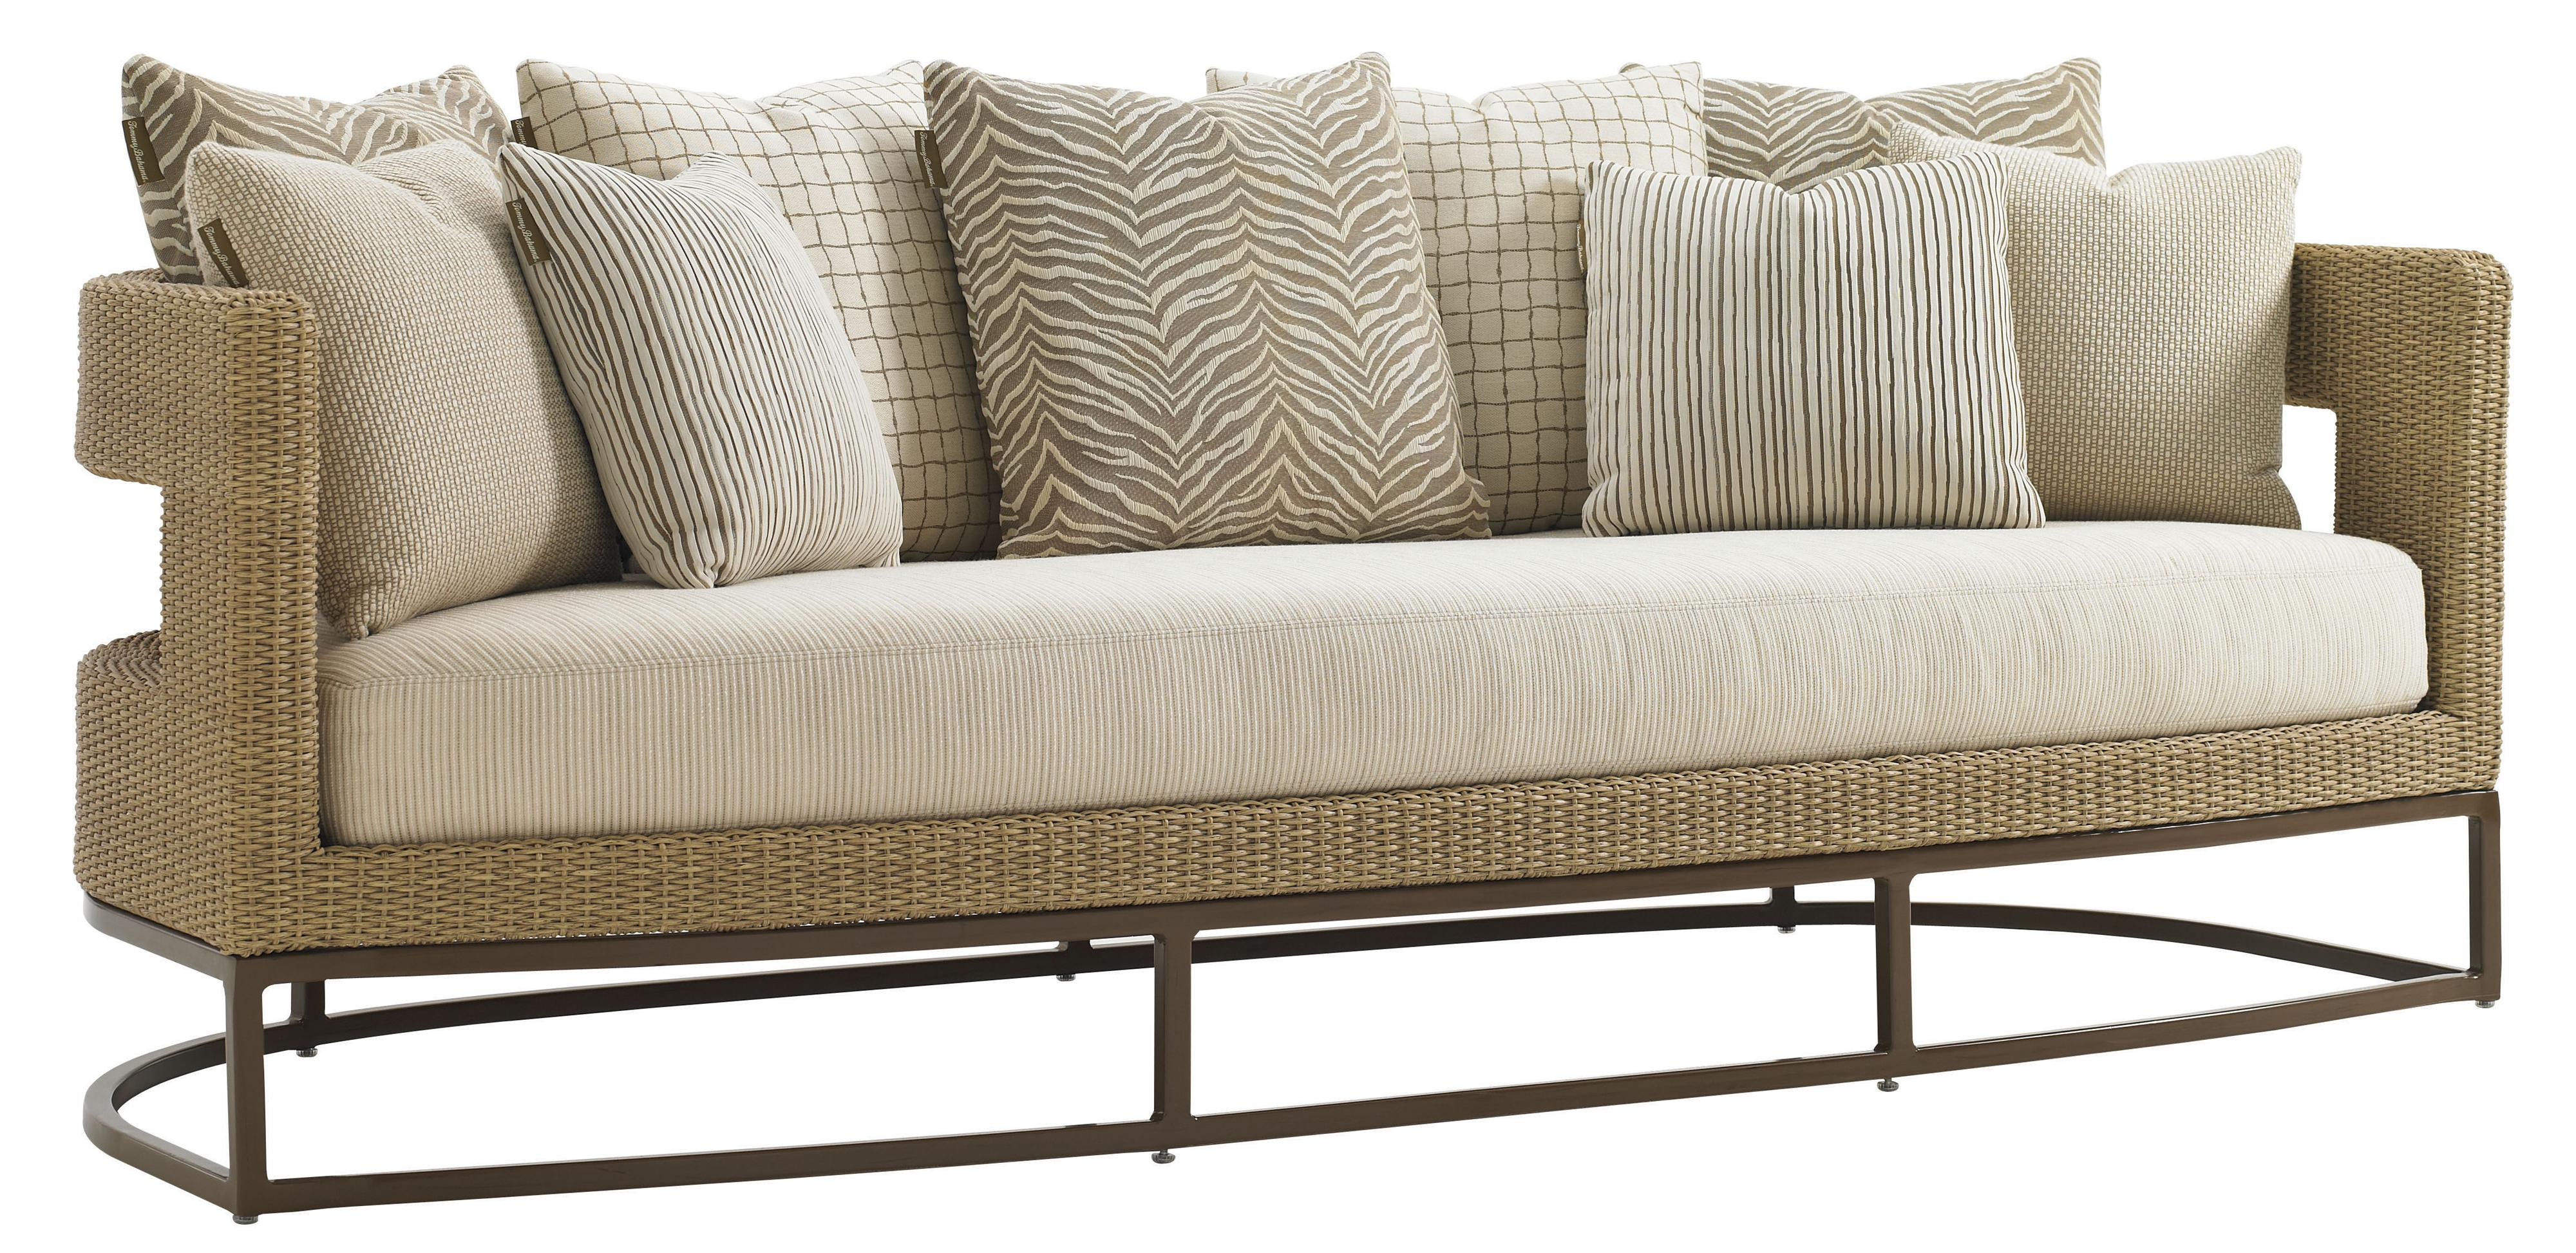 Tommy Bahama Outdoor Living Aviano Outdoor Sofa - Item Number: 3220-33+CS3220-33